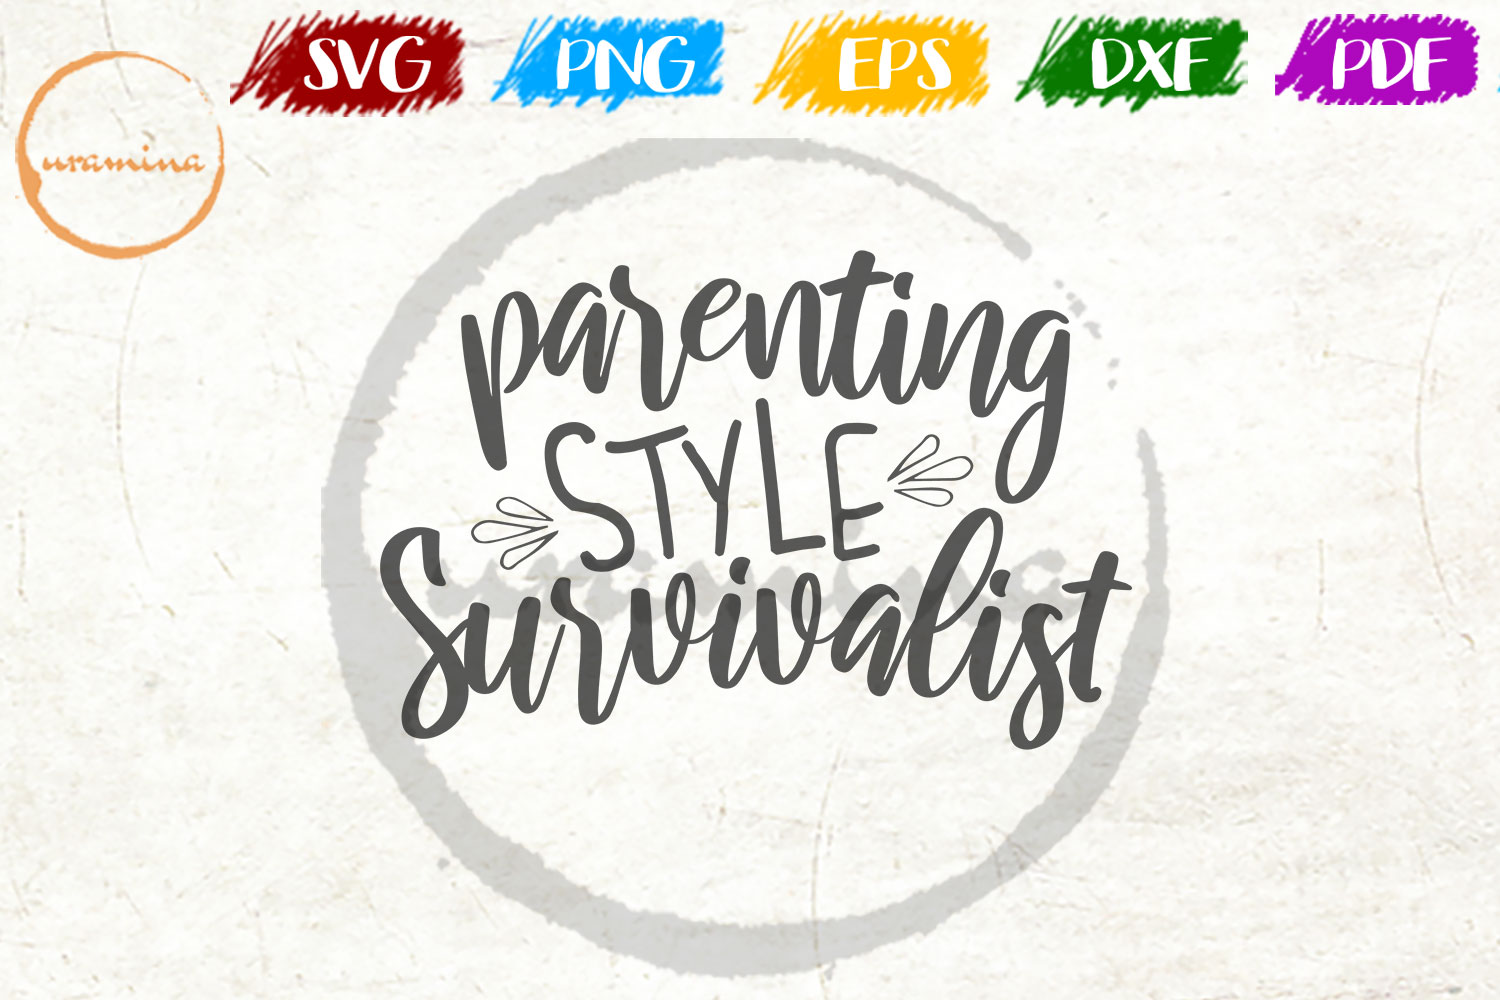 Download Free Parenting Style Survivalist Graphic By Uramina Creative Fabrica for Cricut Explore, Silhouette and other cutting machines.